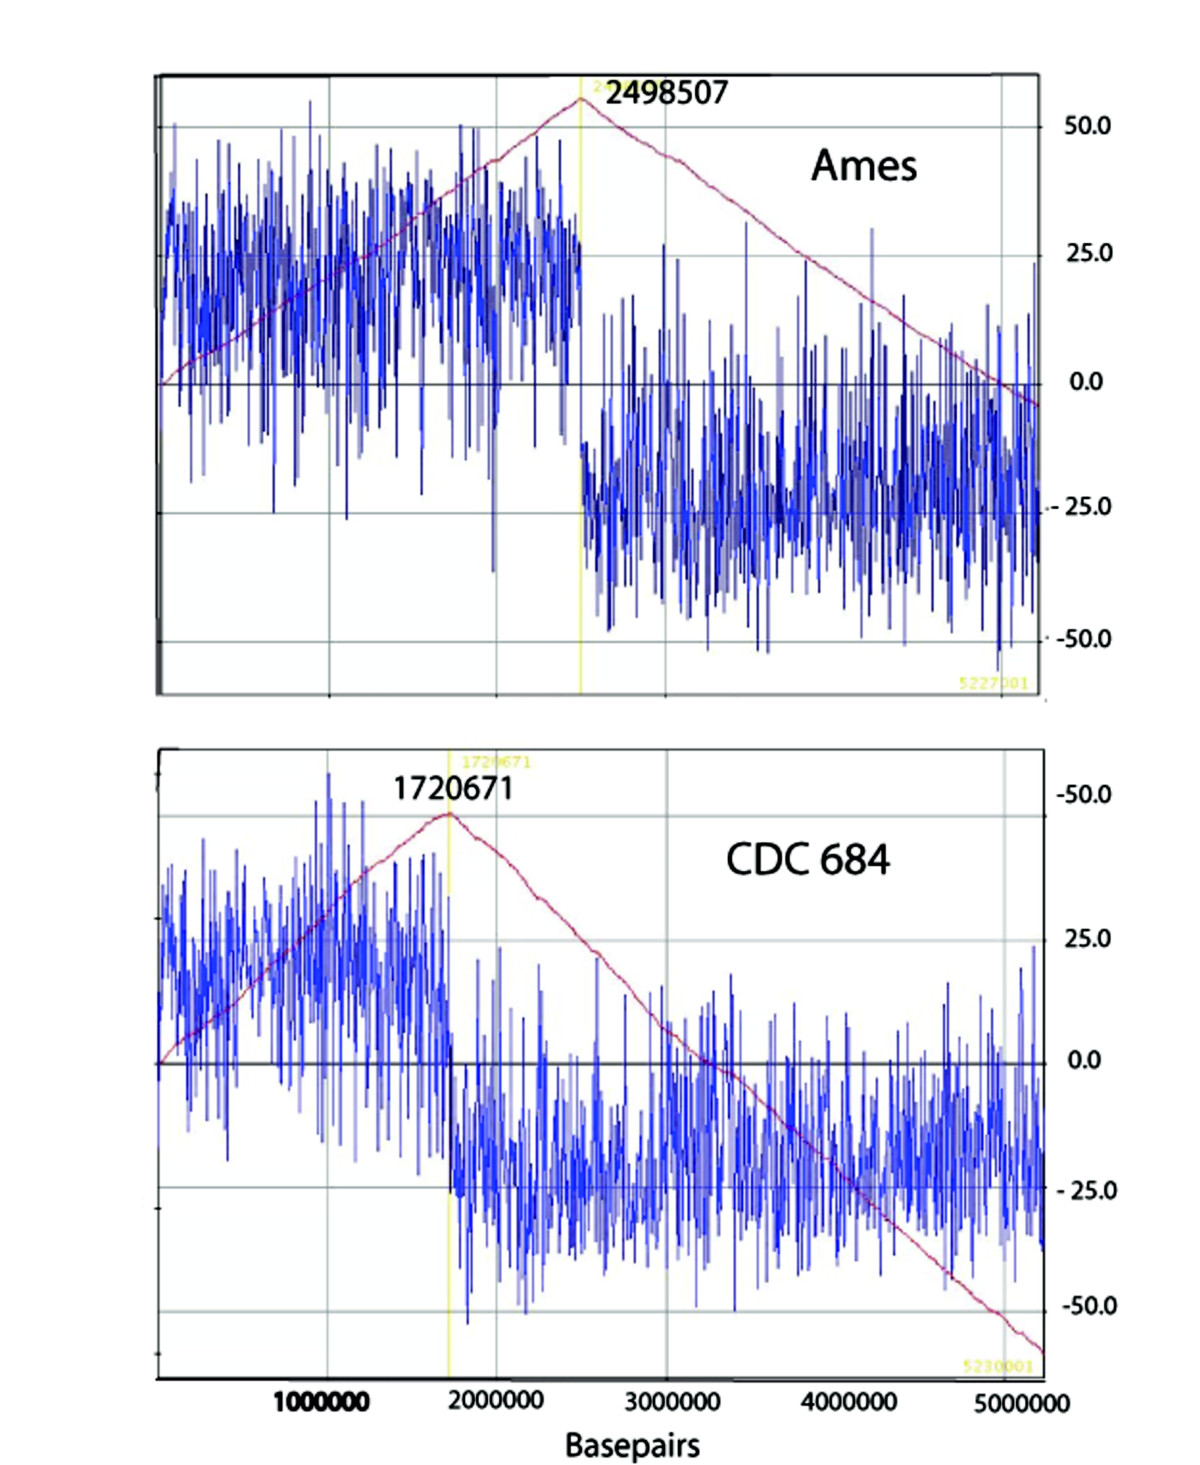 https://static-content.springer.com/image/art%3A10.1186%2F1471-2164-12-477/MediaObjects/12864_2011_Article_3652_Fig4_HTML.jpg